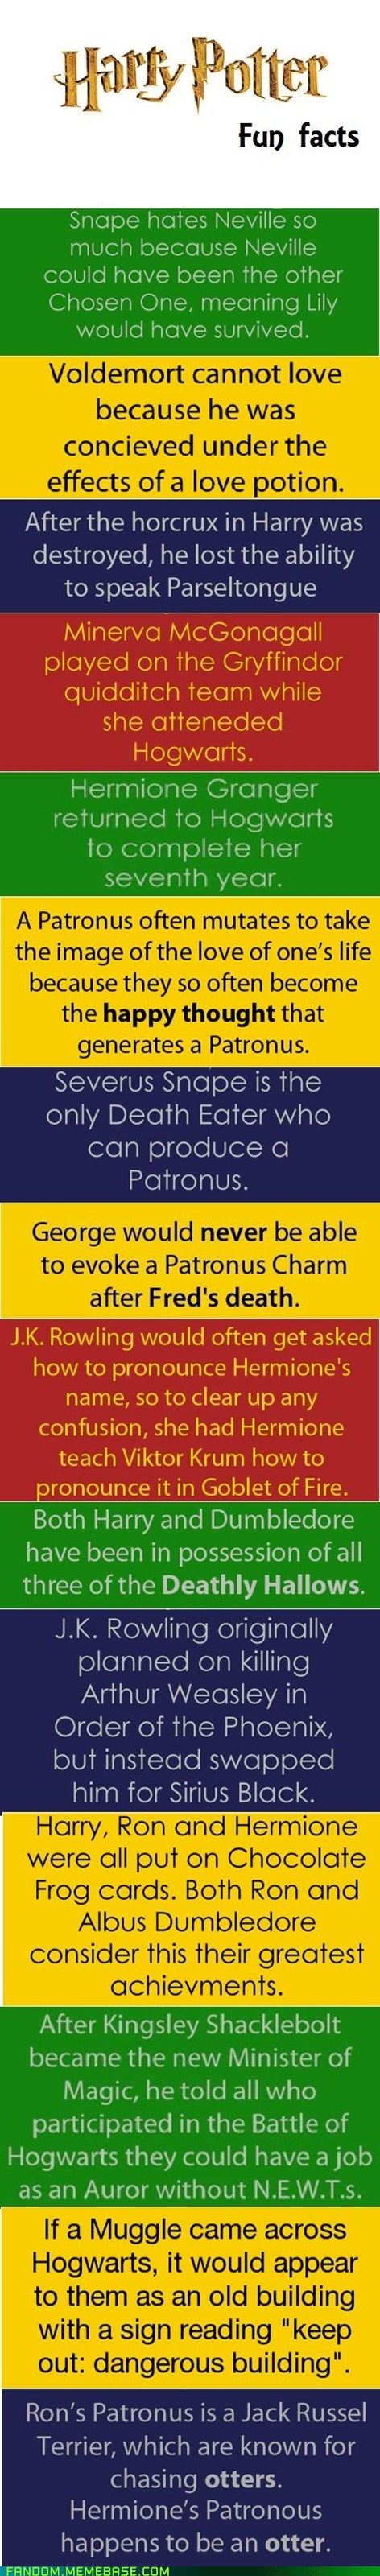 Harry Potter,movies,books,fun facts